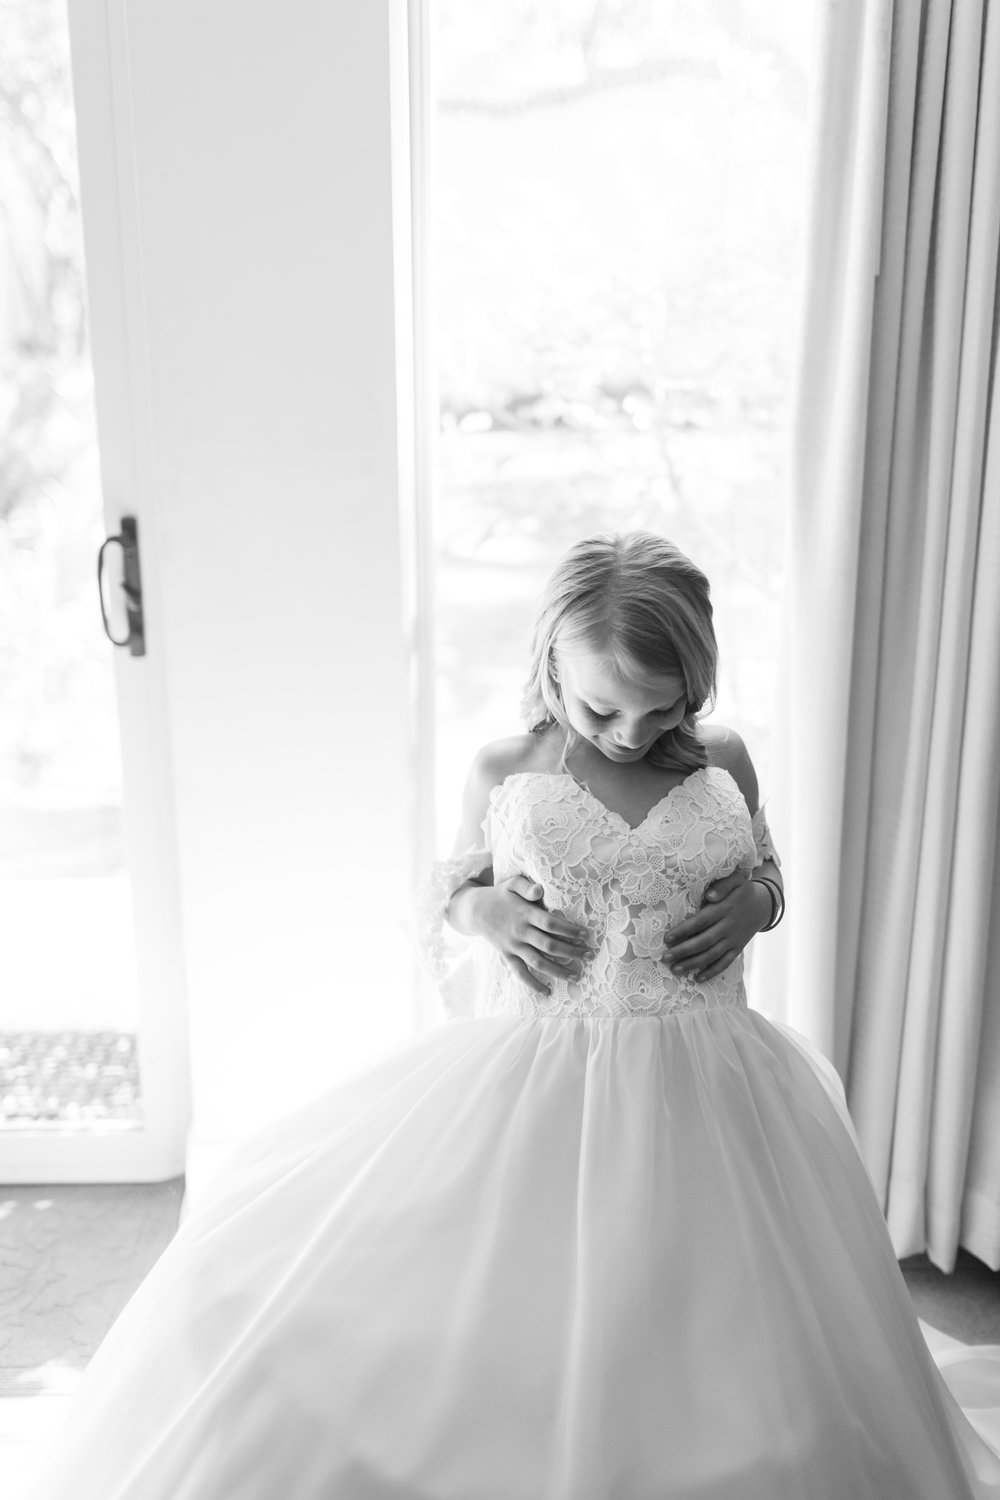 Flower girl dress dreams -